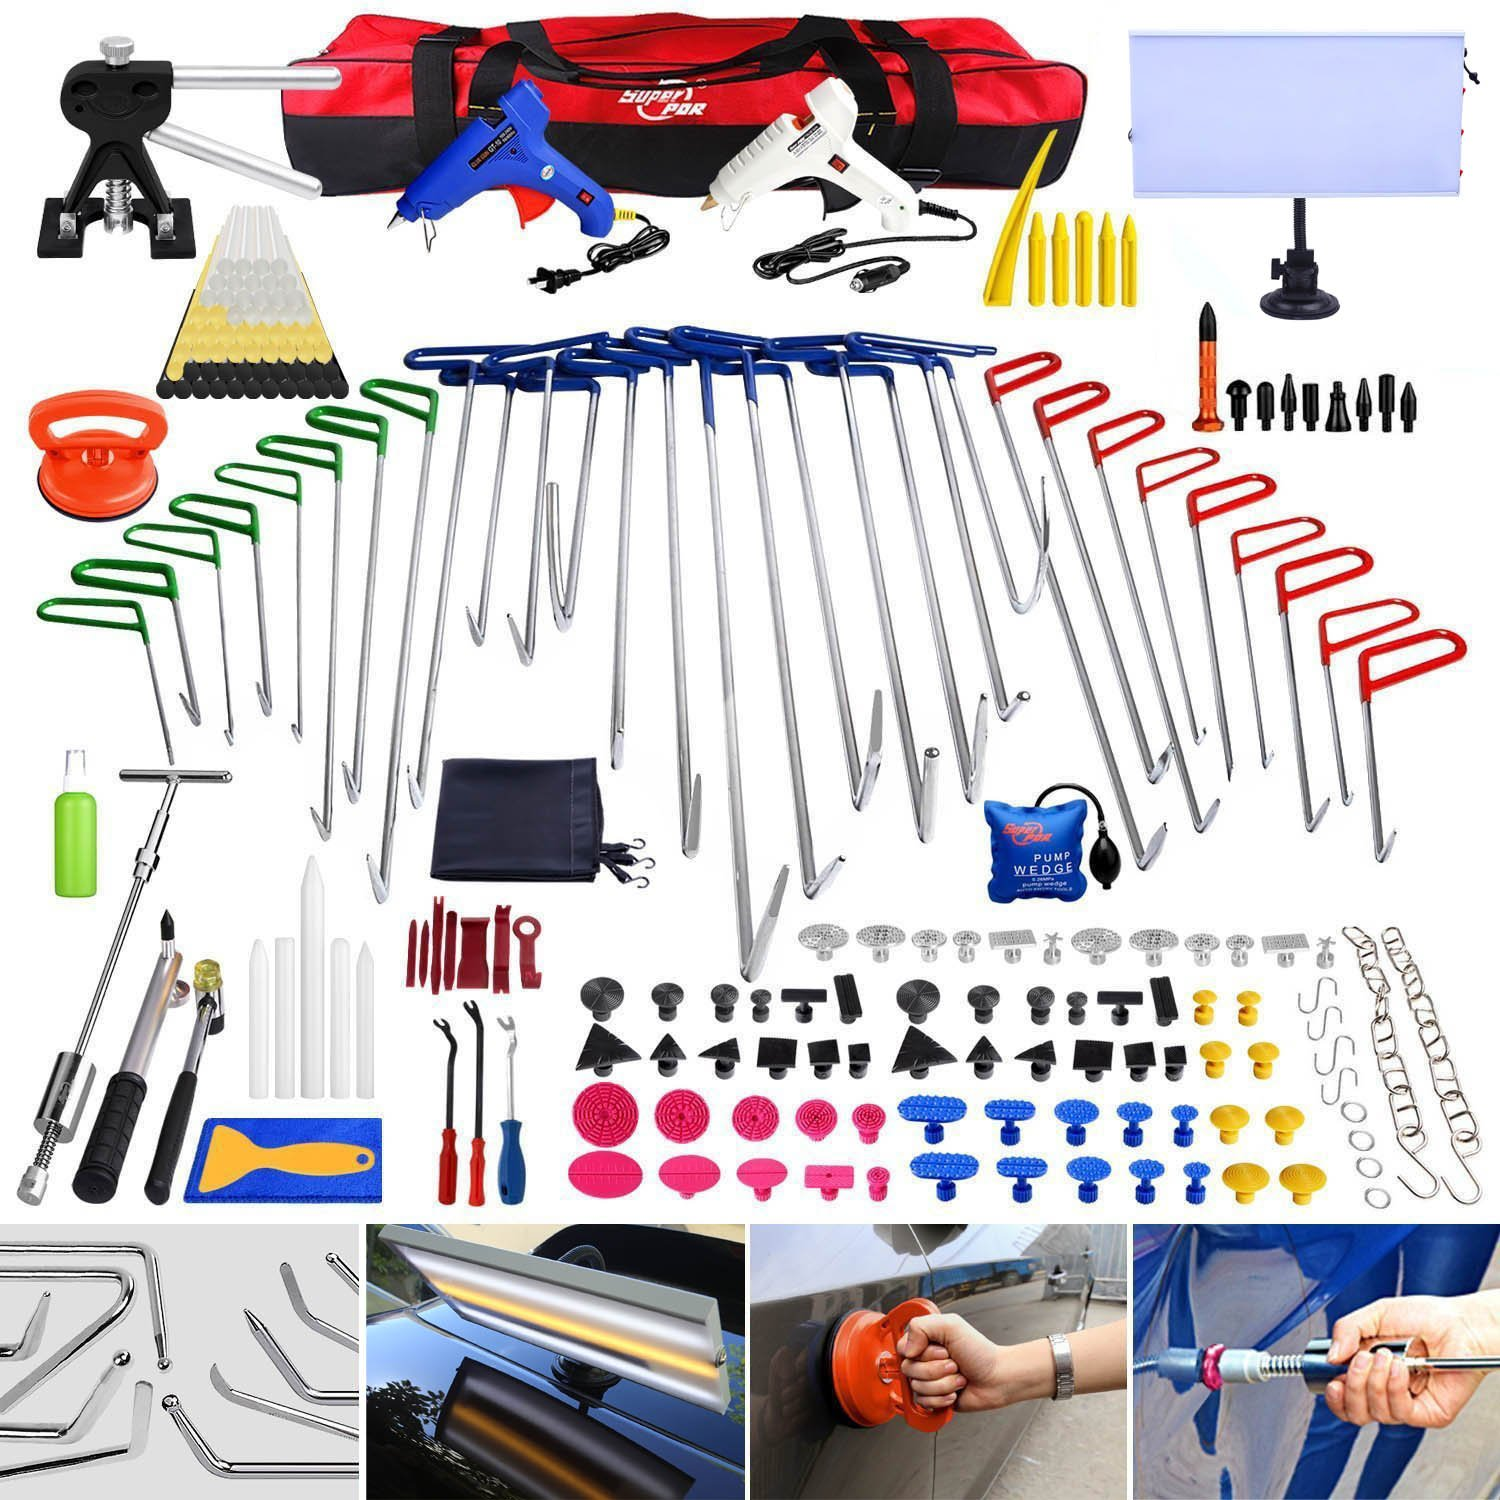 Super PDR 200pcs Professional PDR Rod Kit Spring Steel Push Hooks Auto Car Body Paintless Dent Removal Hair Damage Repair & Door Ding Remover Tools with Car Crowbar suction cup dent puller